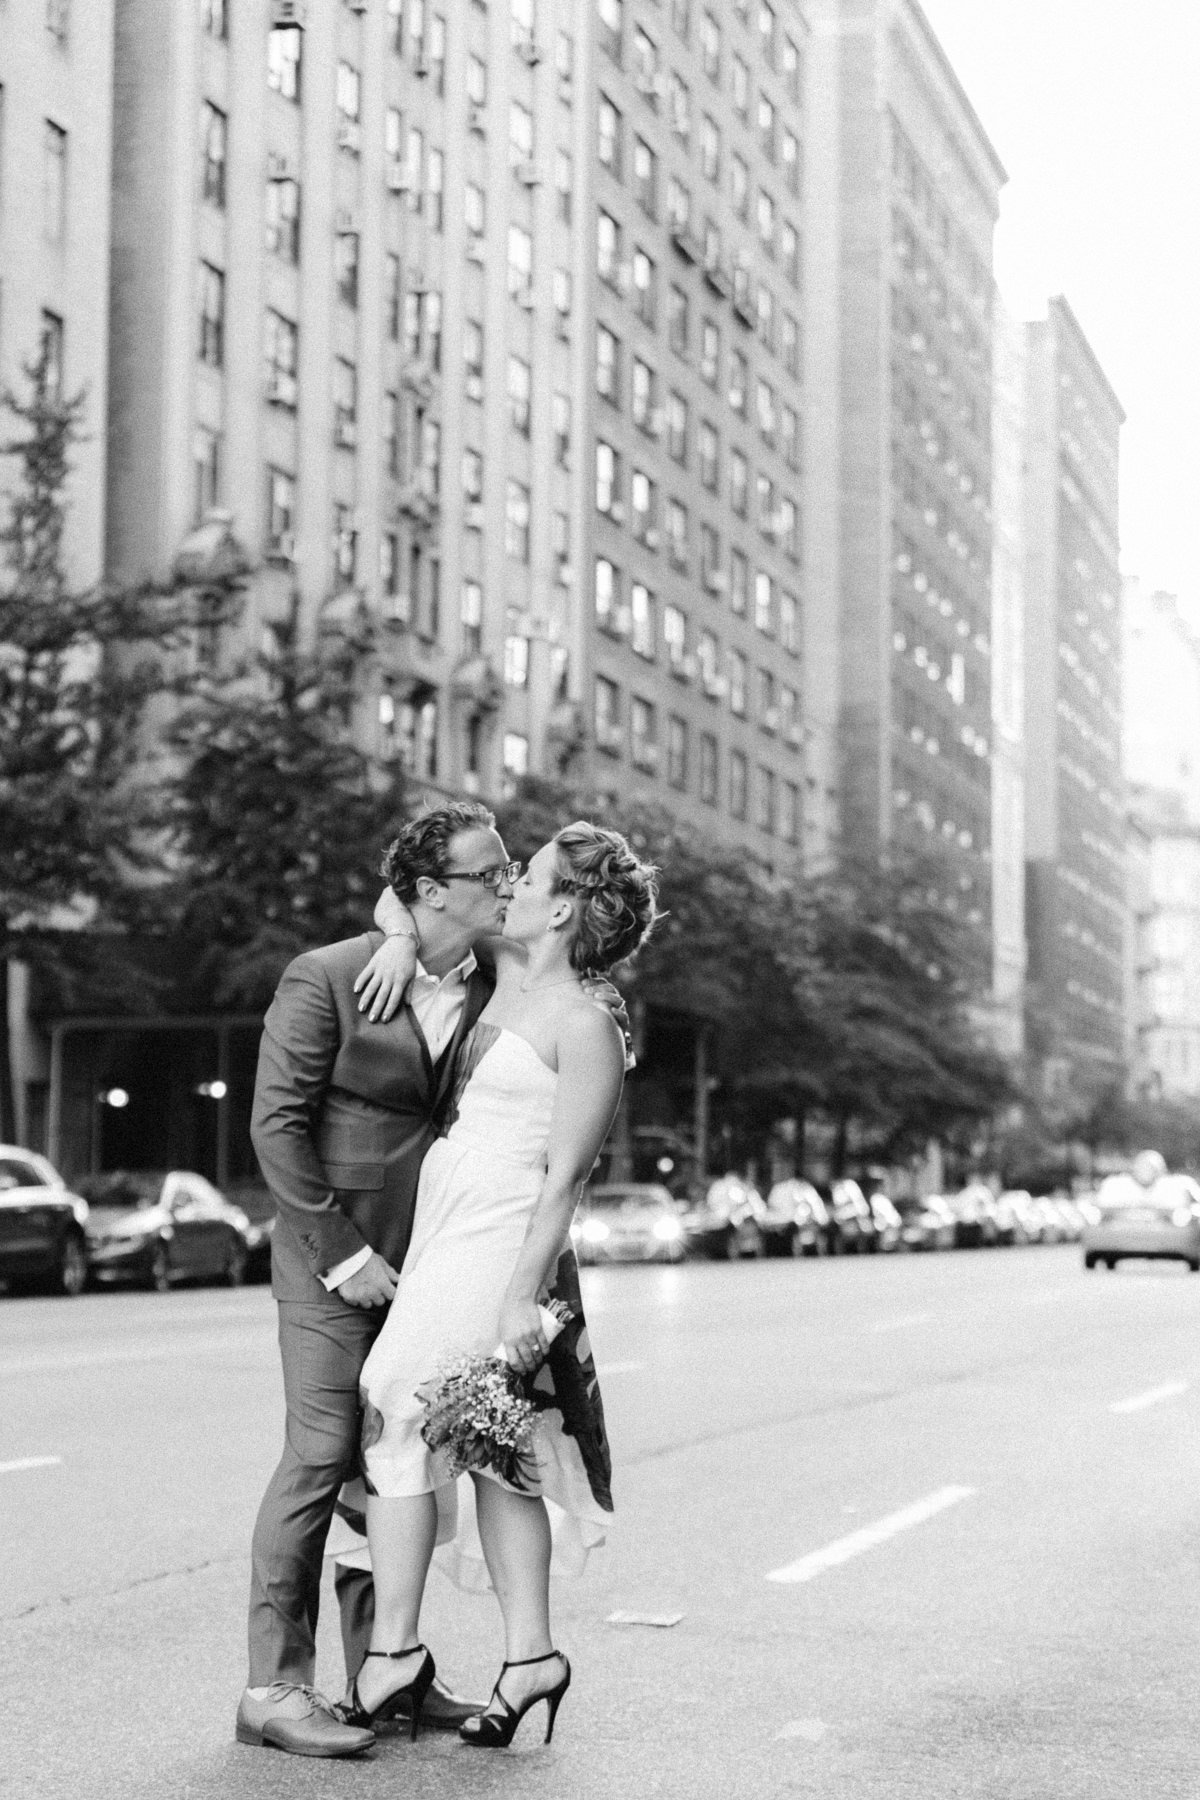 NYC-engagement-photography-by-Tanya-Isaeva-99.jpg